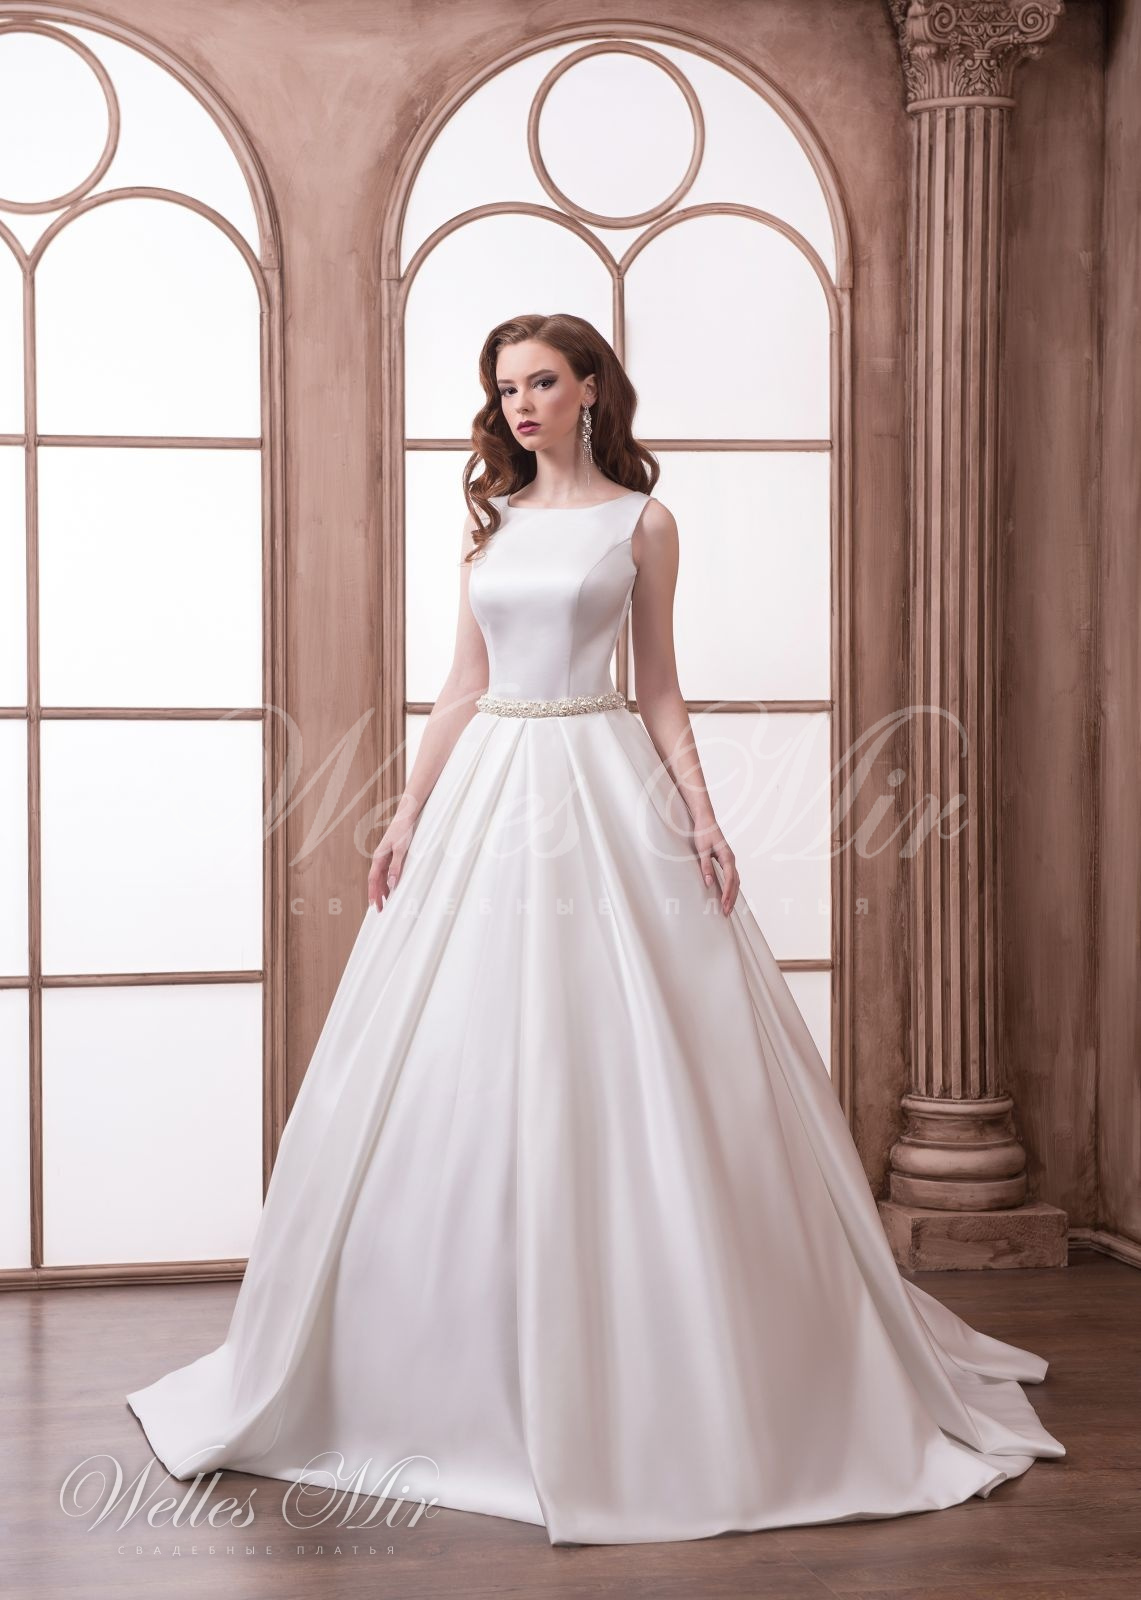 Smooth wedding dress